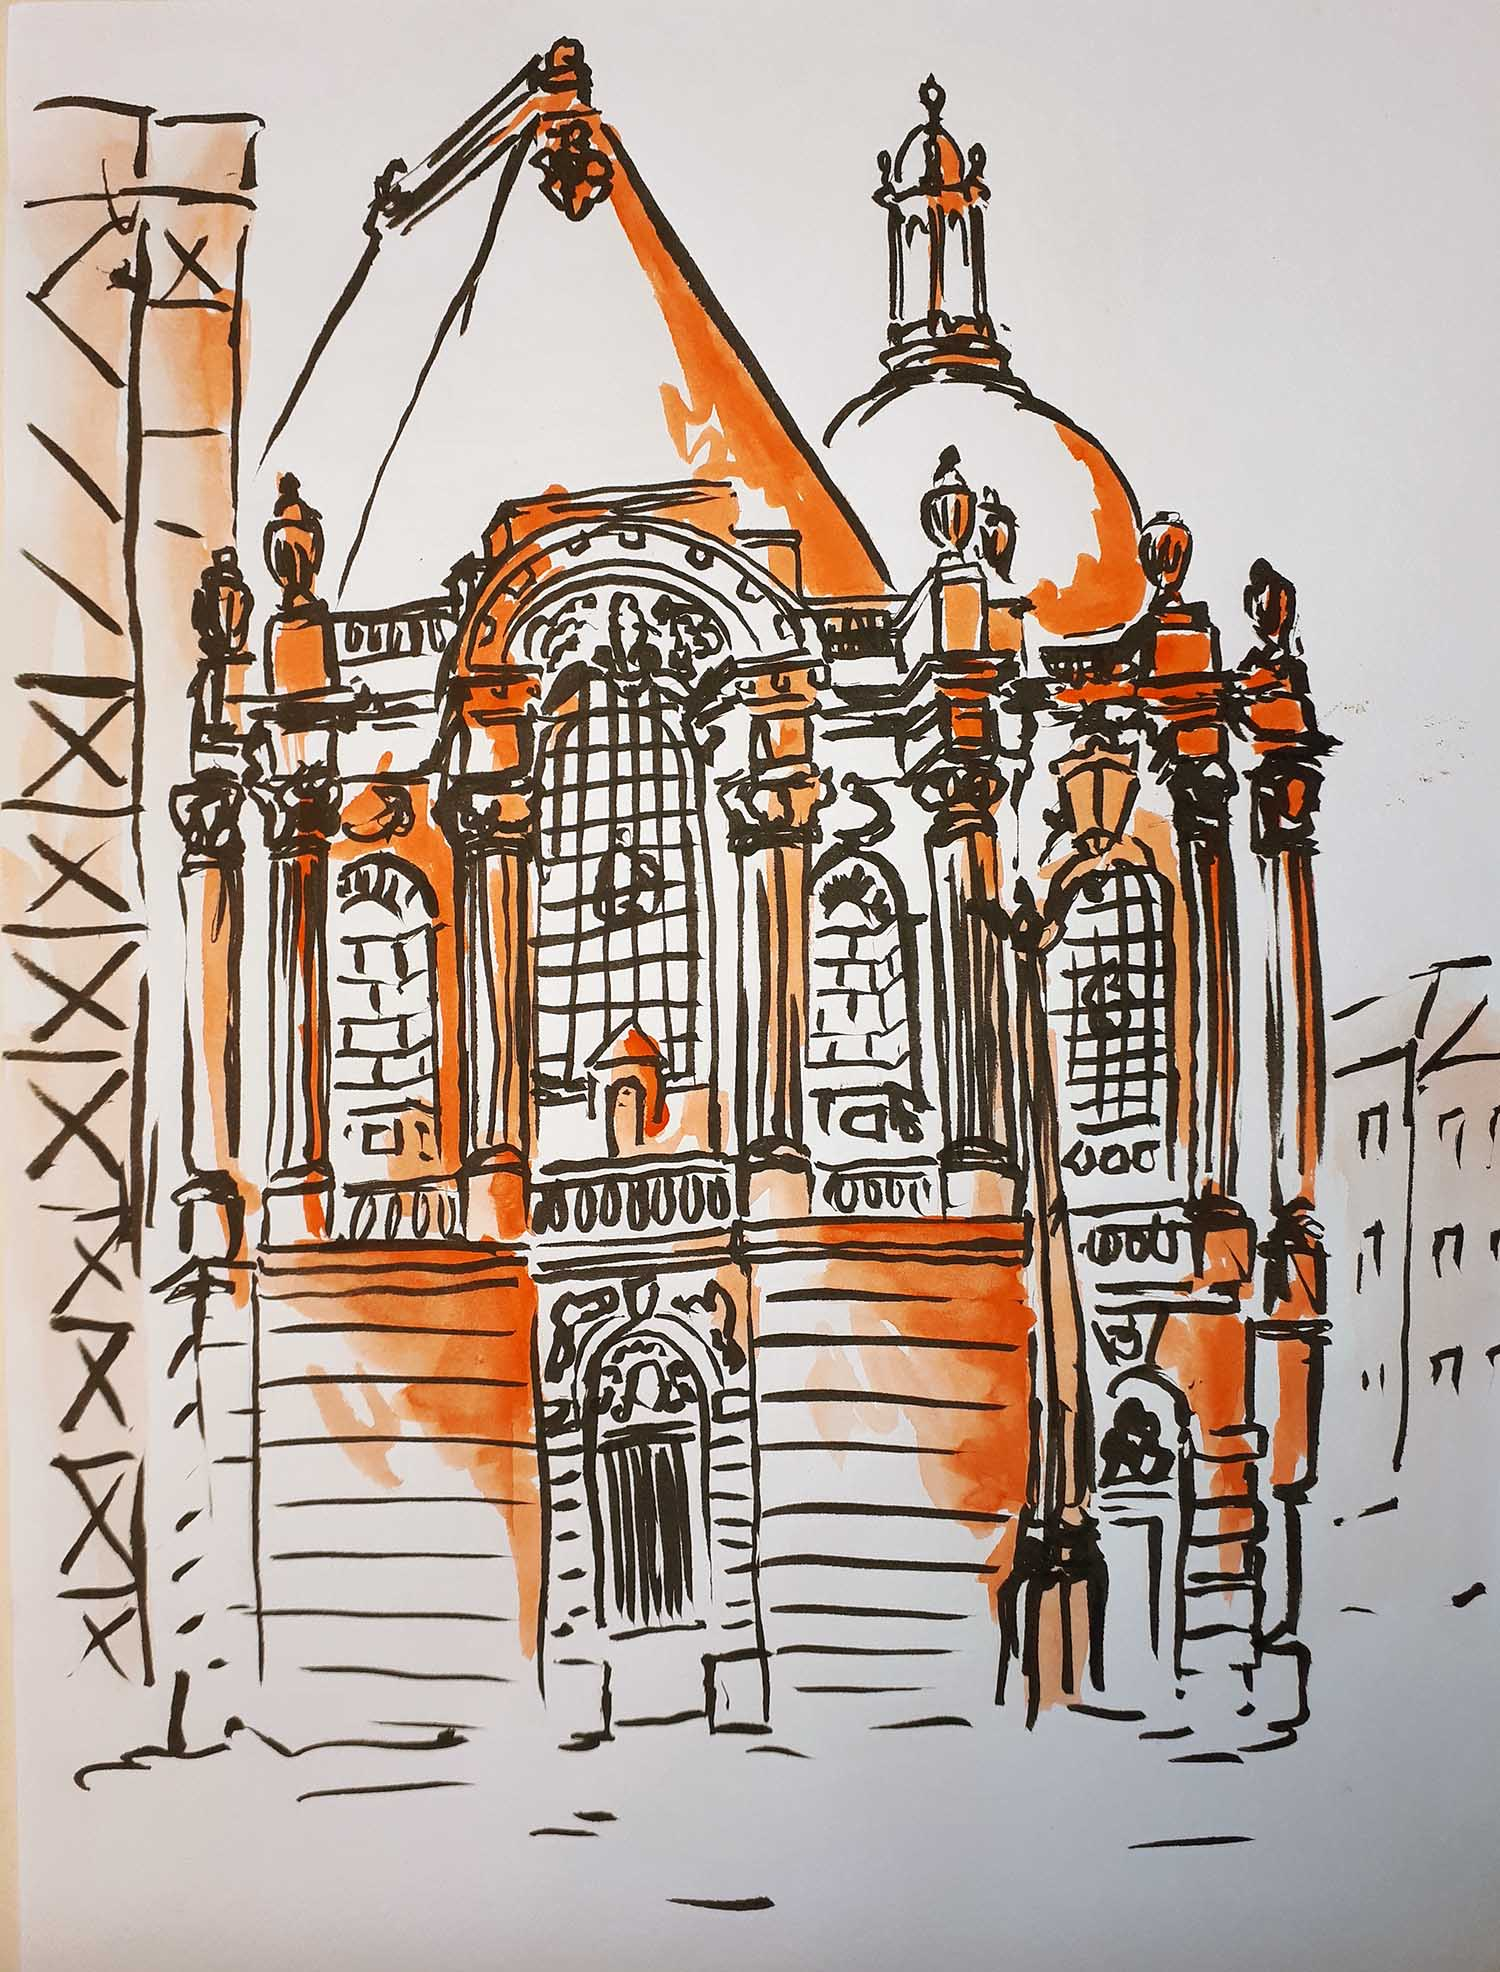 Dessin, urban sketch, dessin de rue, Beaux Arts Lille, orange, Antoine Dazy